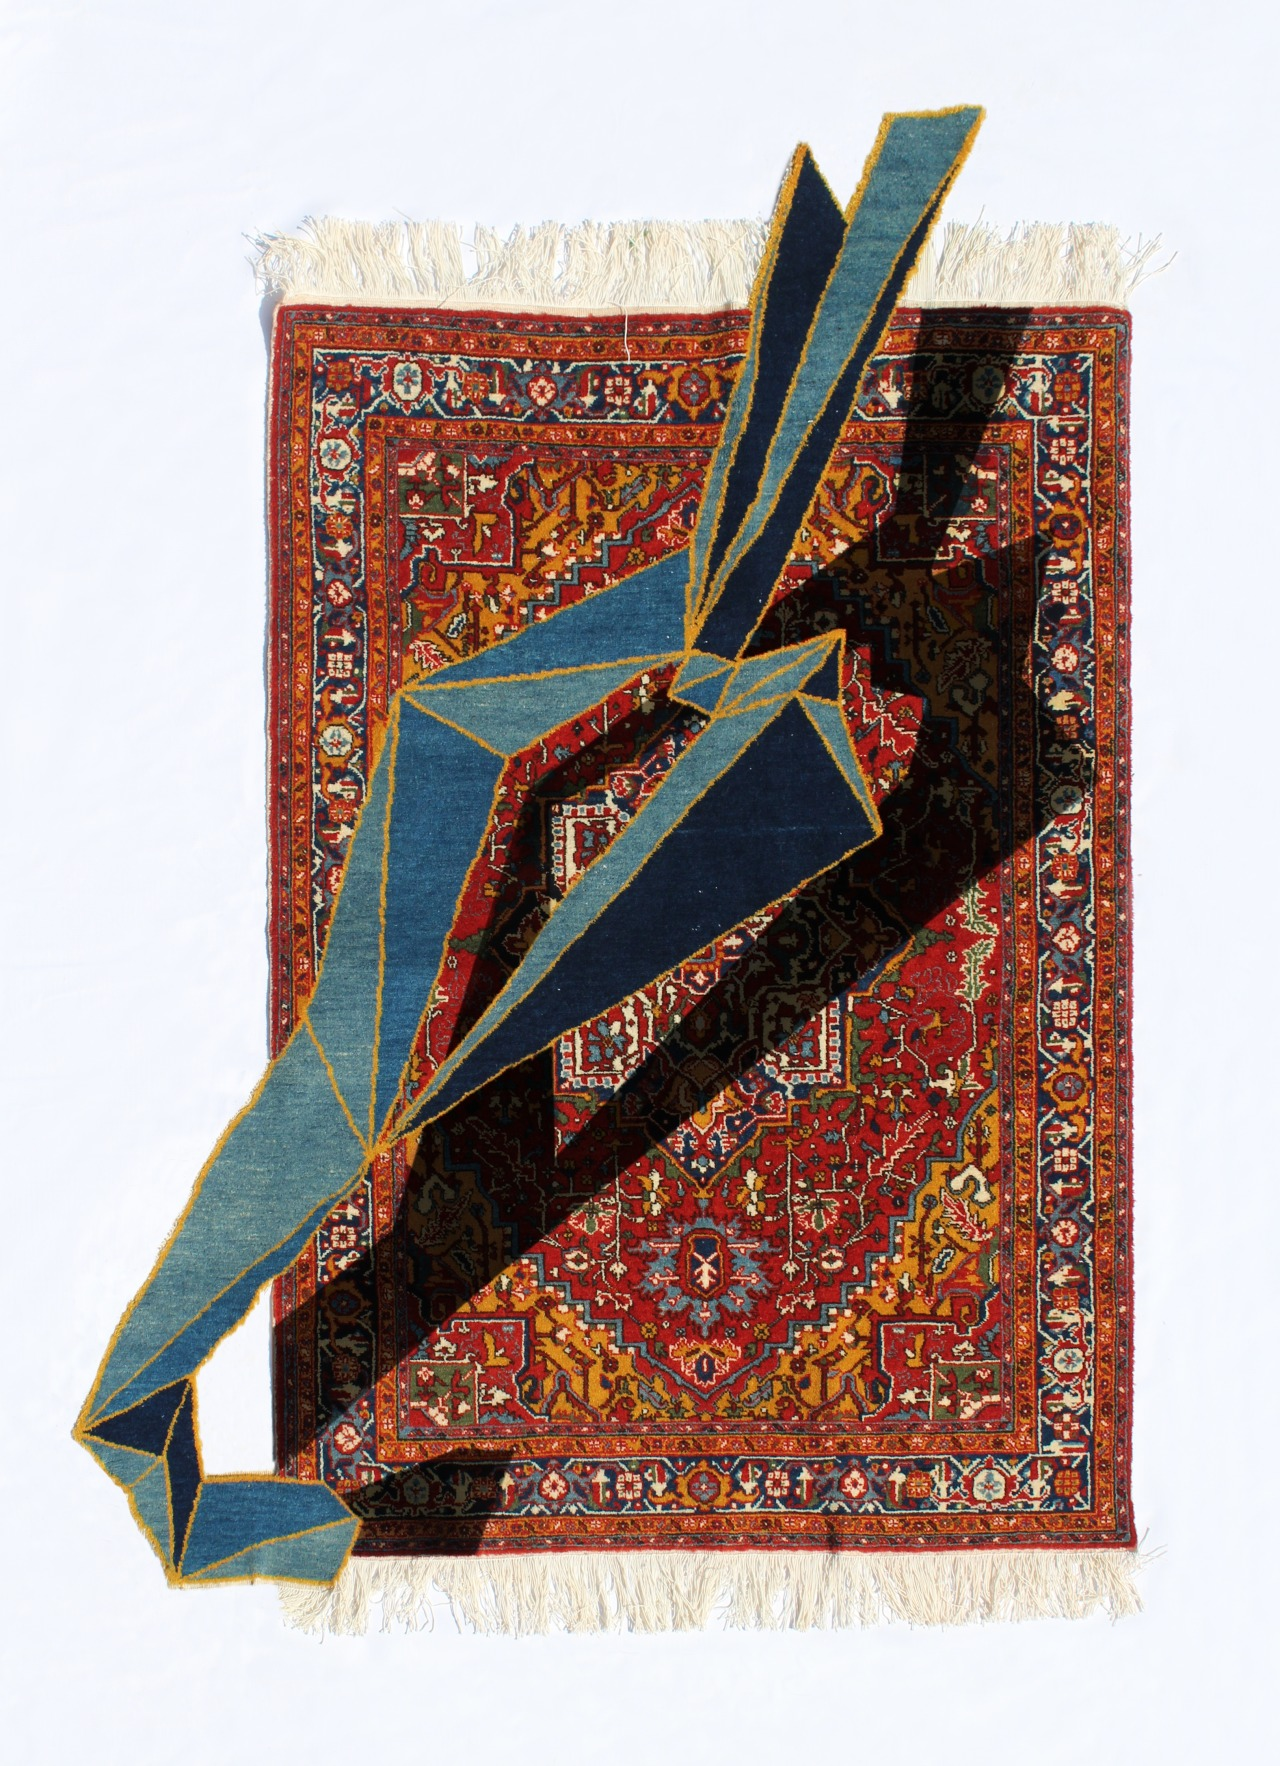 Ilan (Snake) Geometric Series - Handmade Woolen Carpet by Faig Ahmed